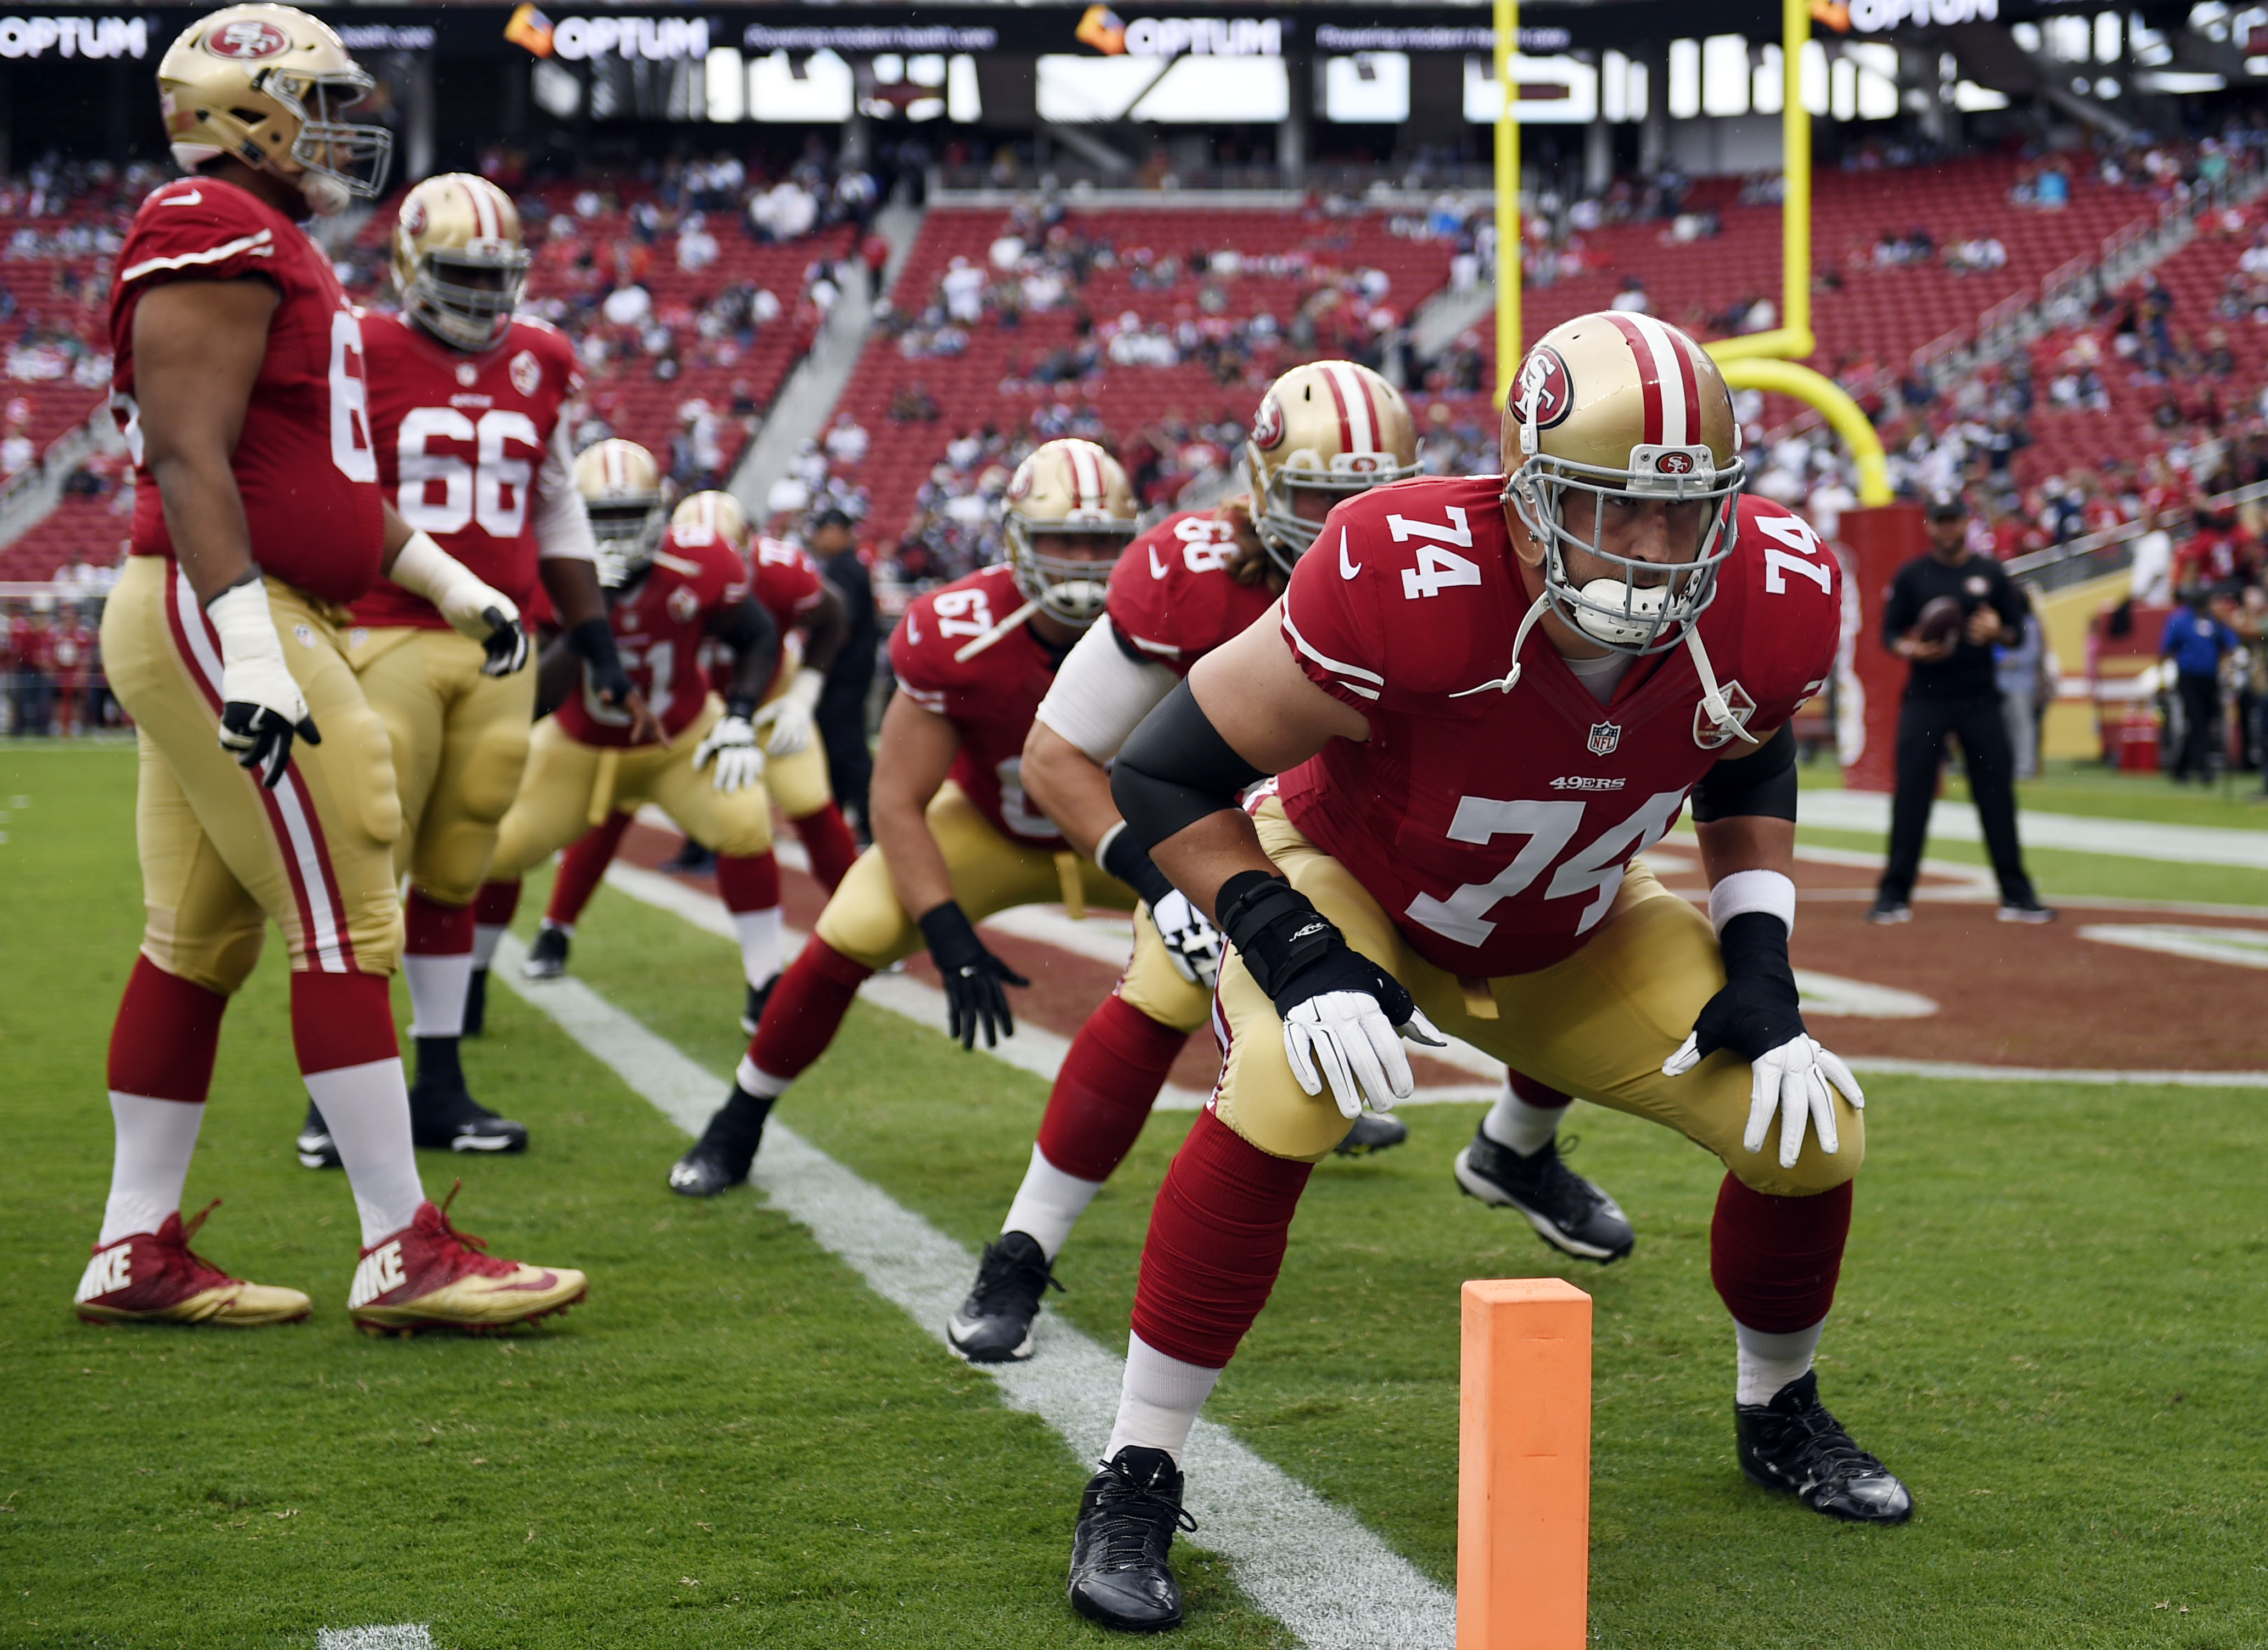 9602999-nfl-dallas-cowboys-at-san-francisco-49ers